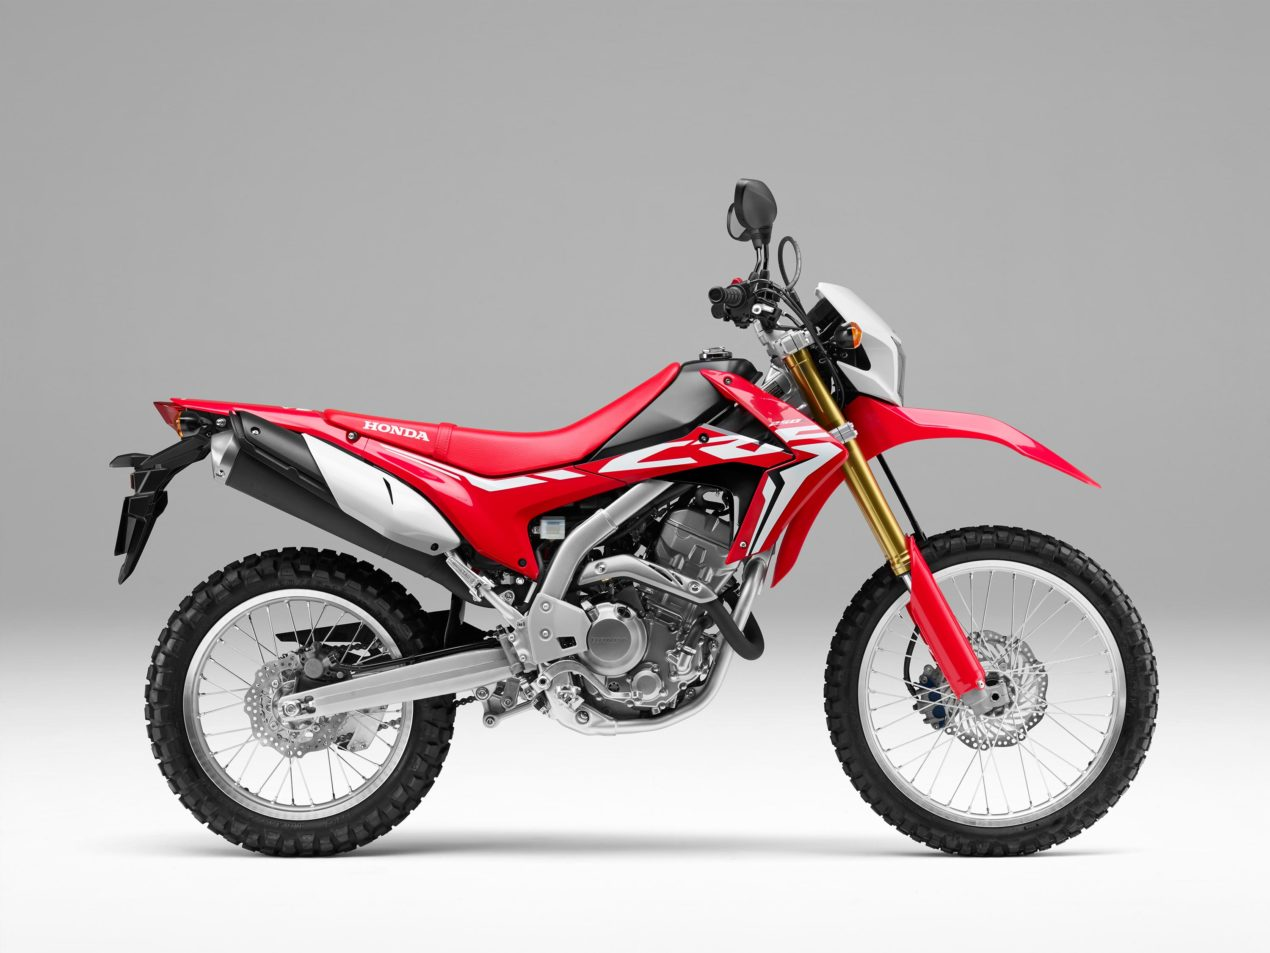 honda crf250l recalled for wiring harness malfunctions. Black Bedroom Furniture Sets. Home Design Ideas